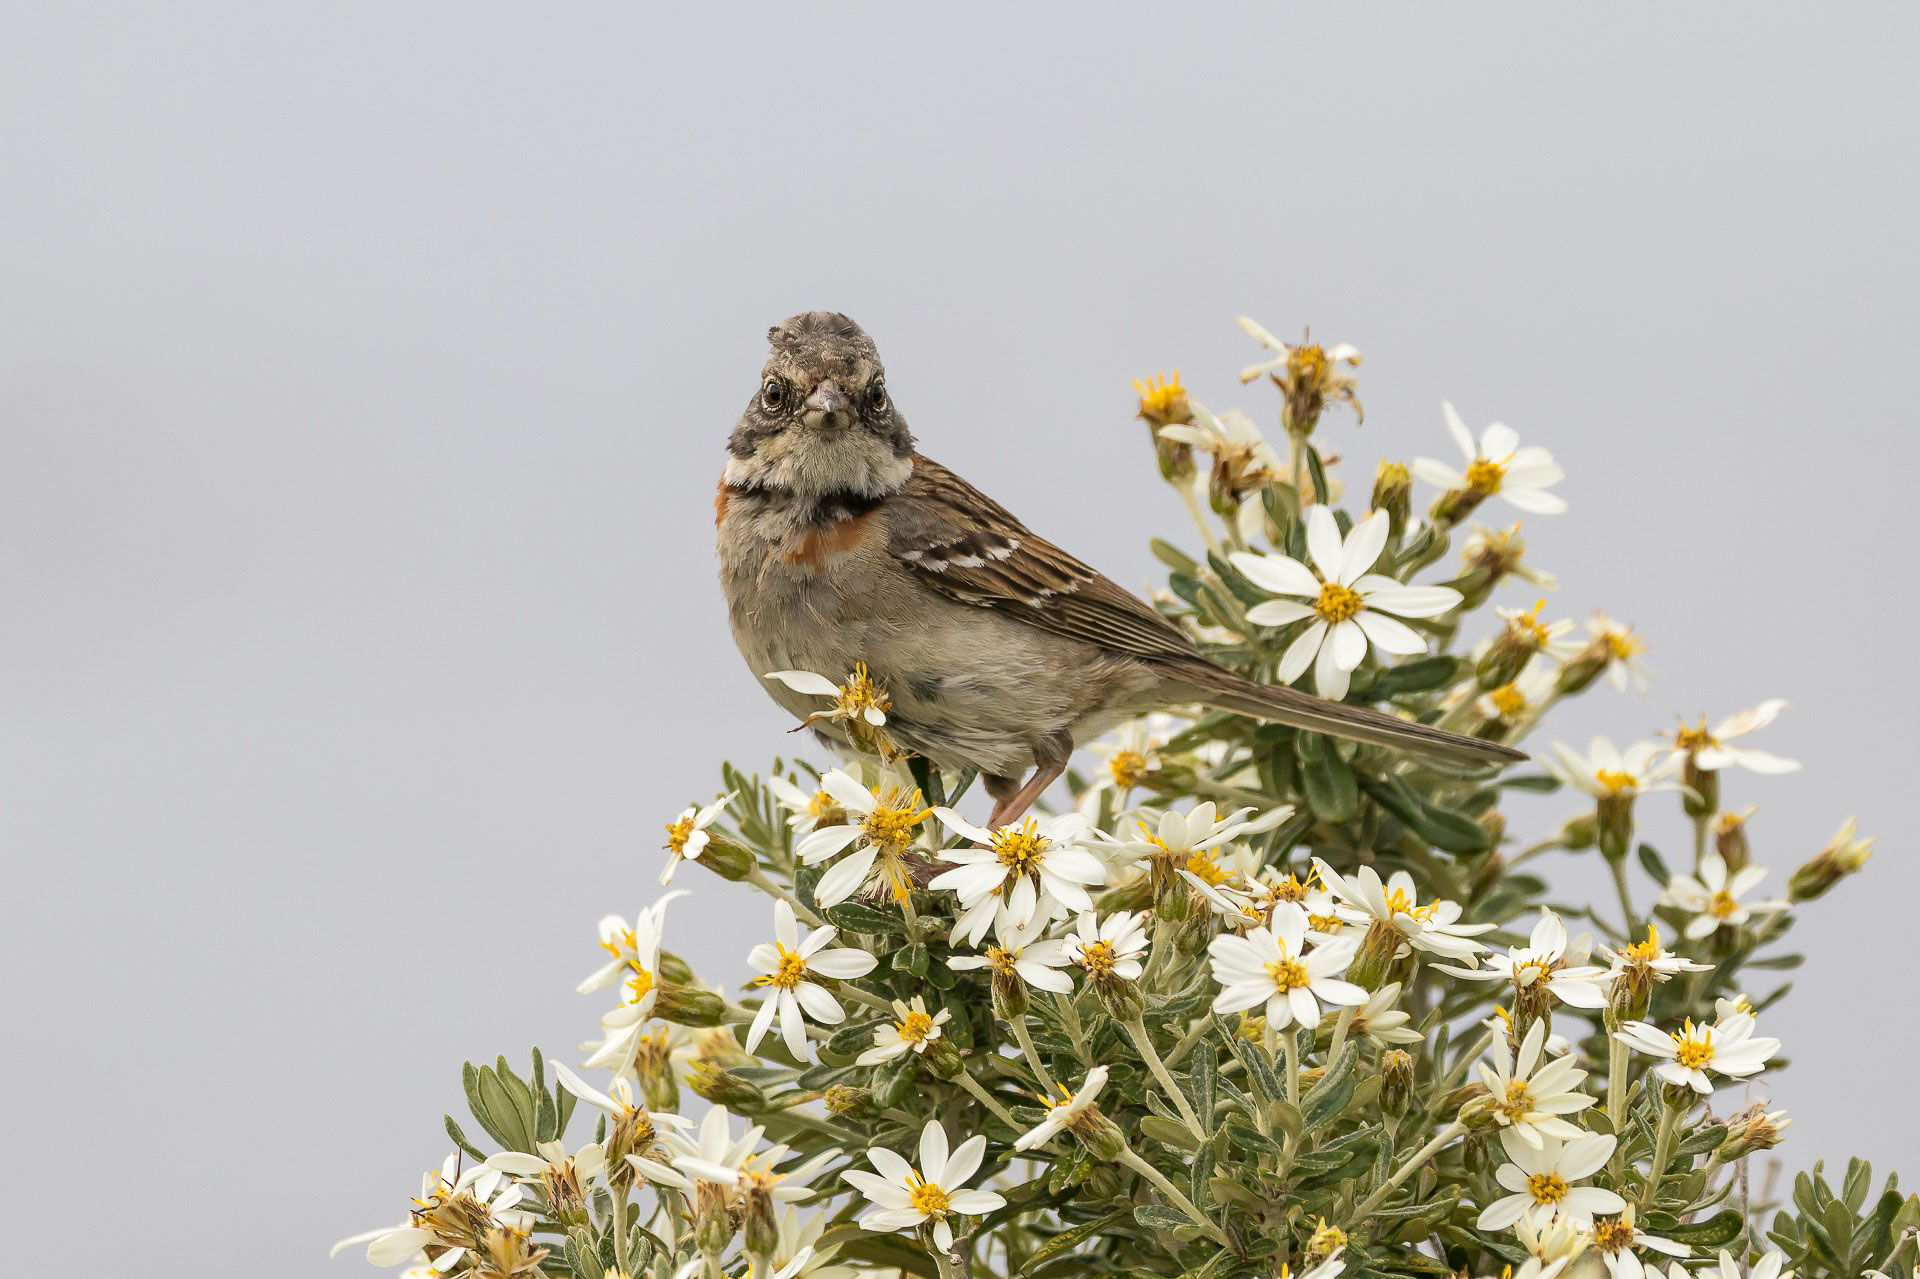 Sparrow, Rufous-collared